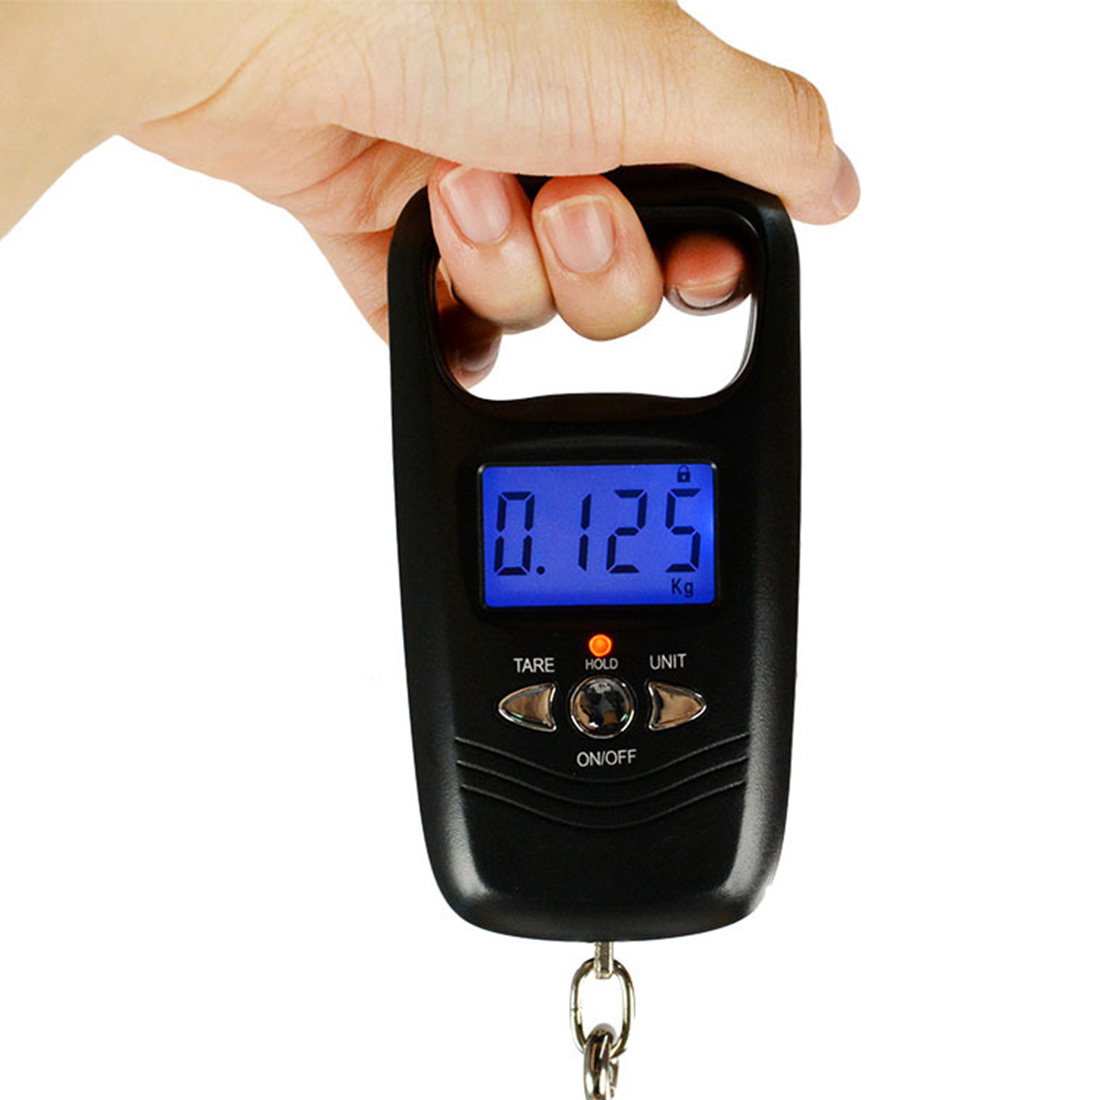 Hook Fish Weight Mini Hanging <font><b>Scale</b></font> <font><b>Pocket</b></font> Portable 50kg LCD <font><b>Digital</b></font> Hanging Luggage Weighting Fishing Hook <font><b>Scale</b></font> image